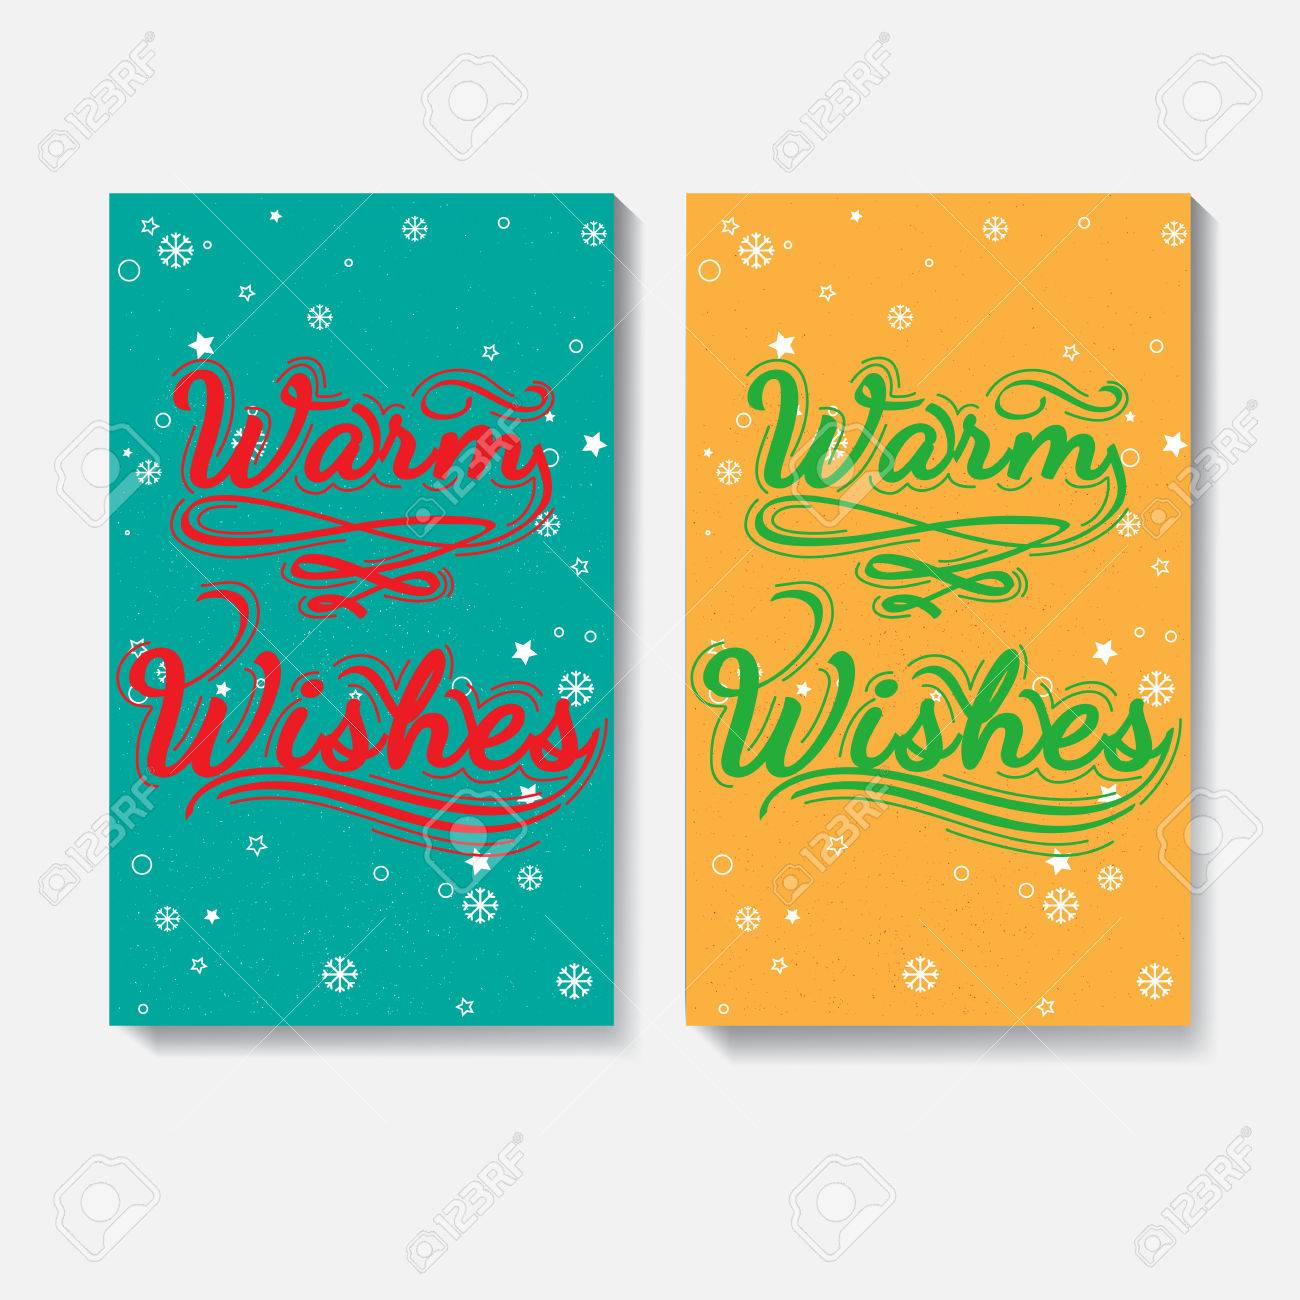 Christmas Letter Ideas. Warm Wishes - Quote. Hand Drawn Lettering ...